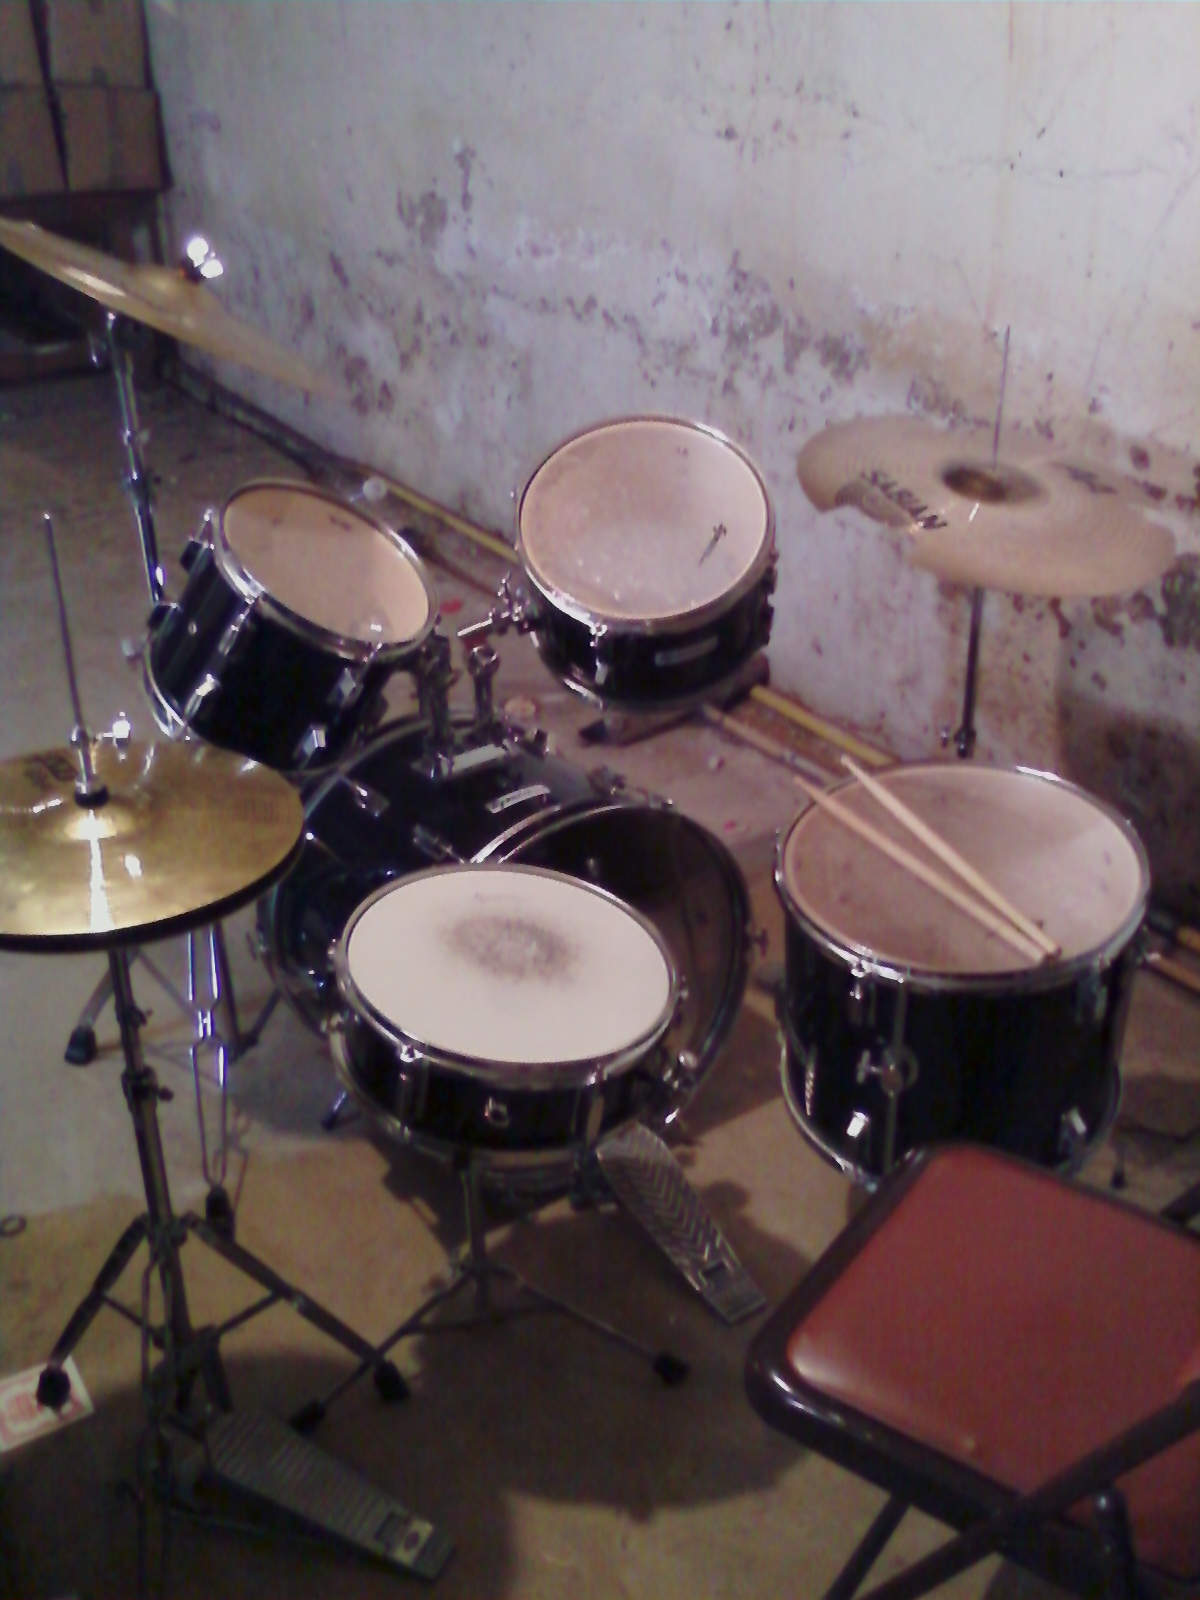 Kids drumset from my practice space/torture chamber down the street